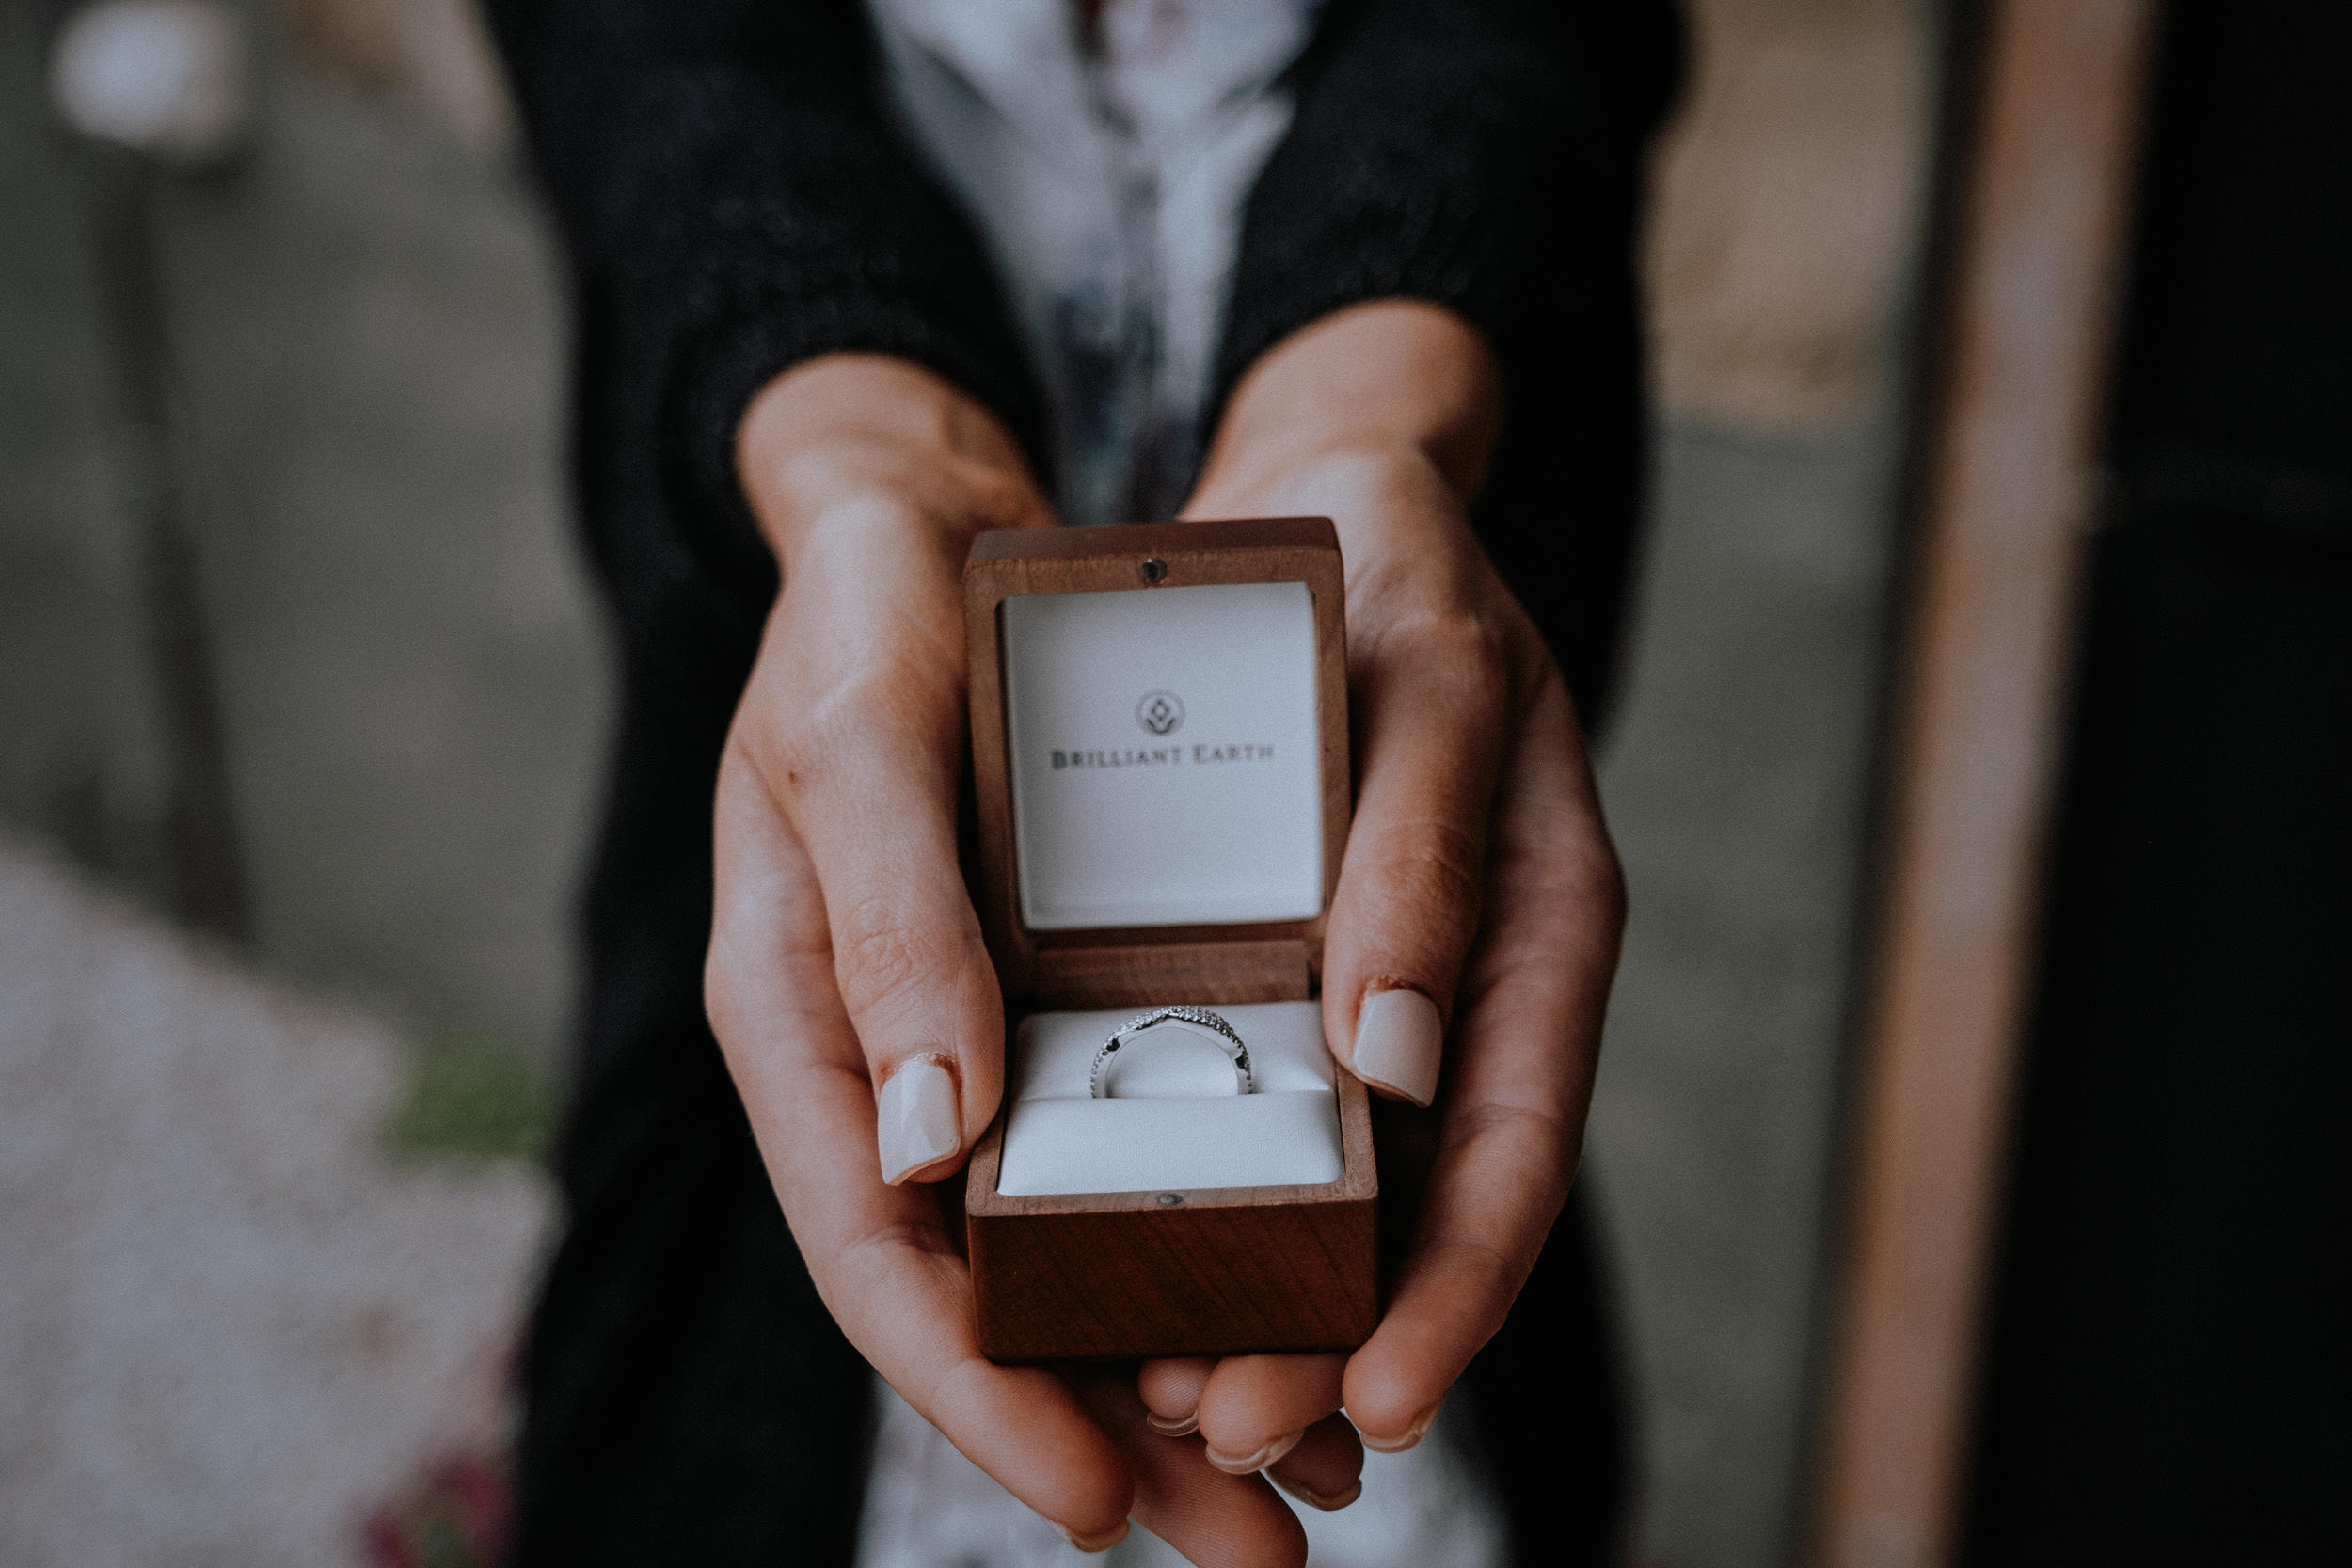 A bride shows off her wedding ring in the box by Brilliant Earth